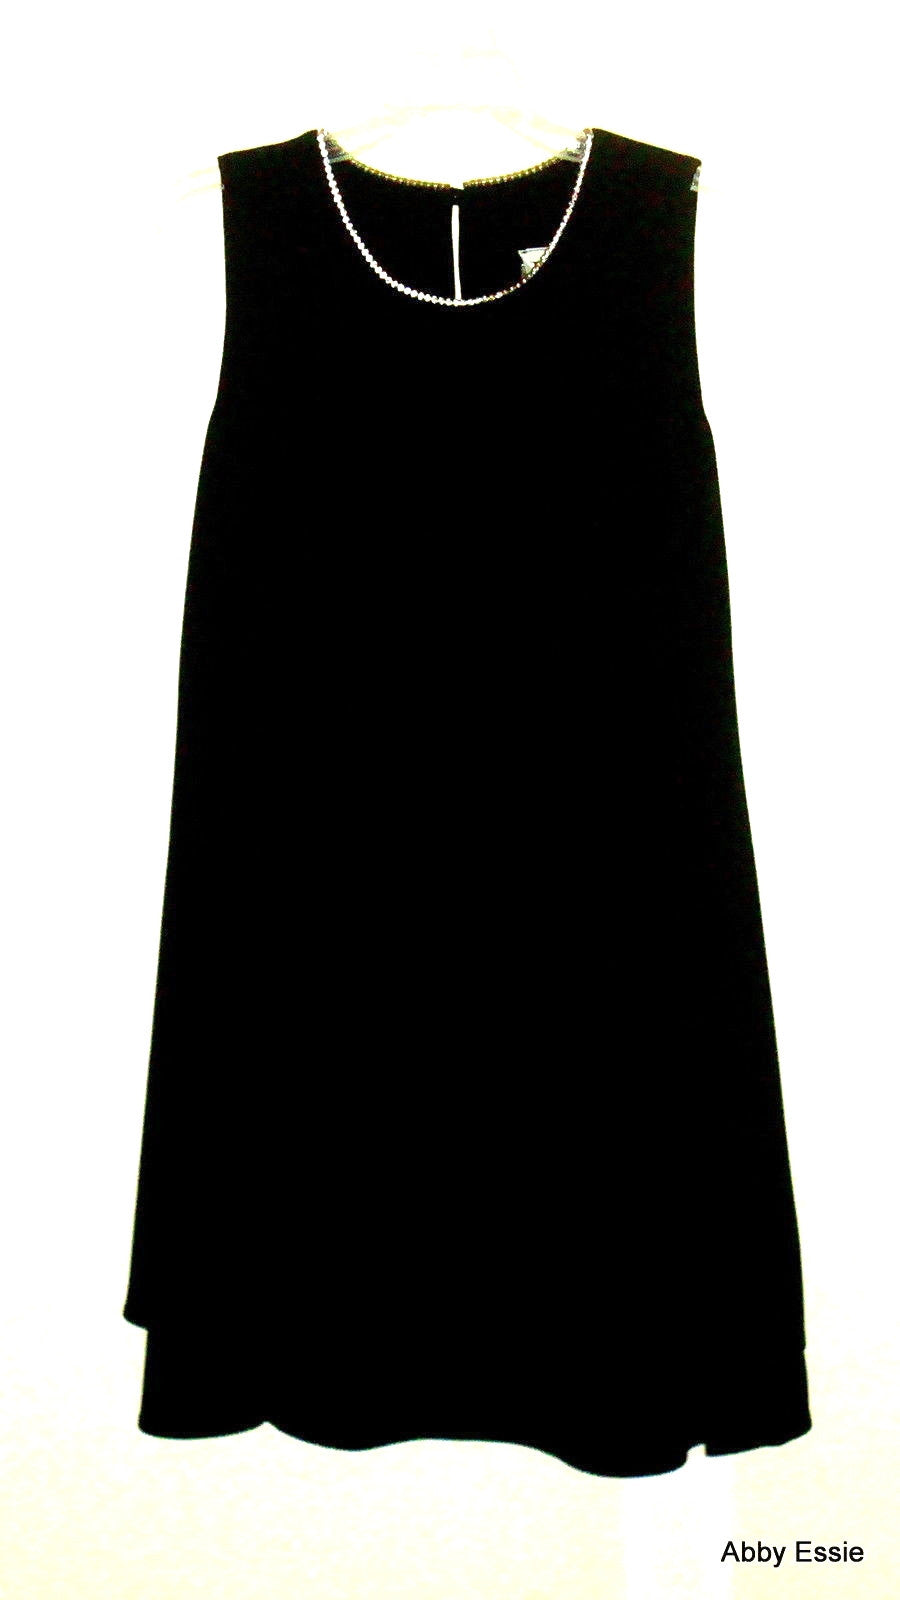 VINTAGE IANELLA BLACK CREPE RHINESTONE COLLAR MOD SLEEVELESS LAYERED FLUTTER DRESS